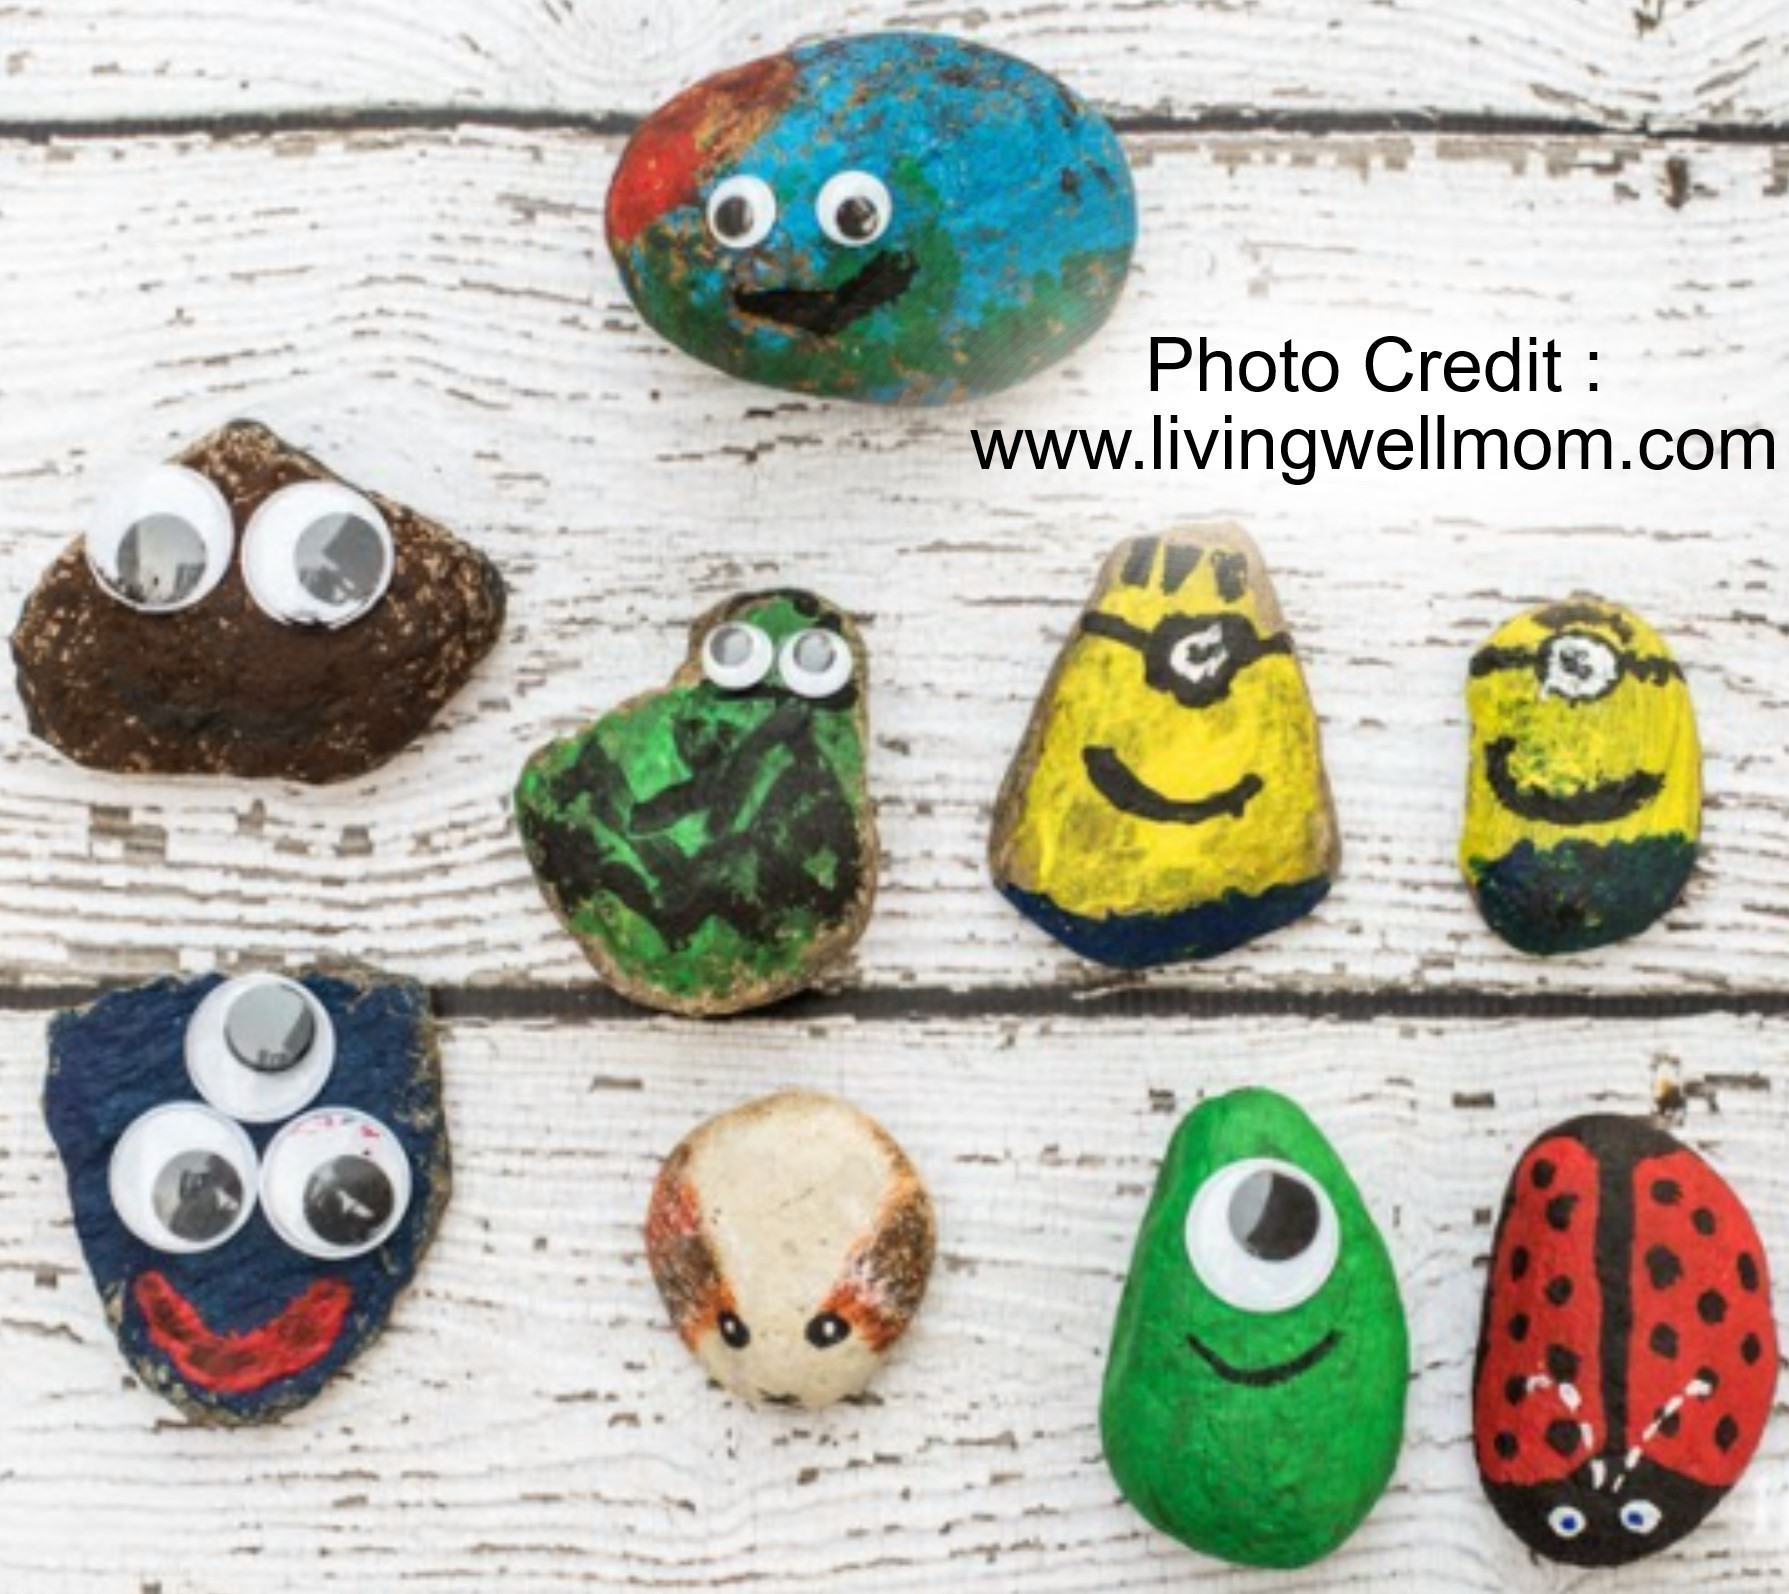 Pet Rocks from Living Well Mom